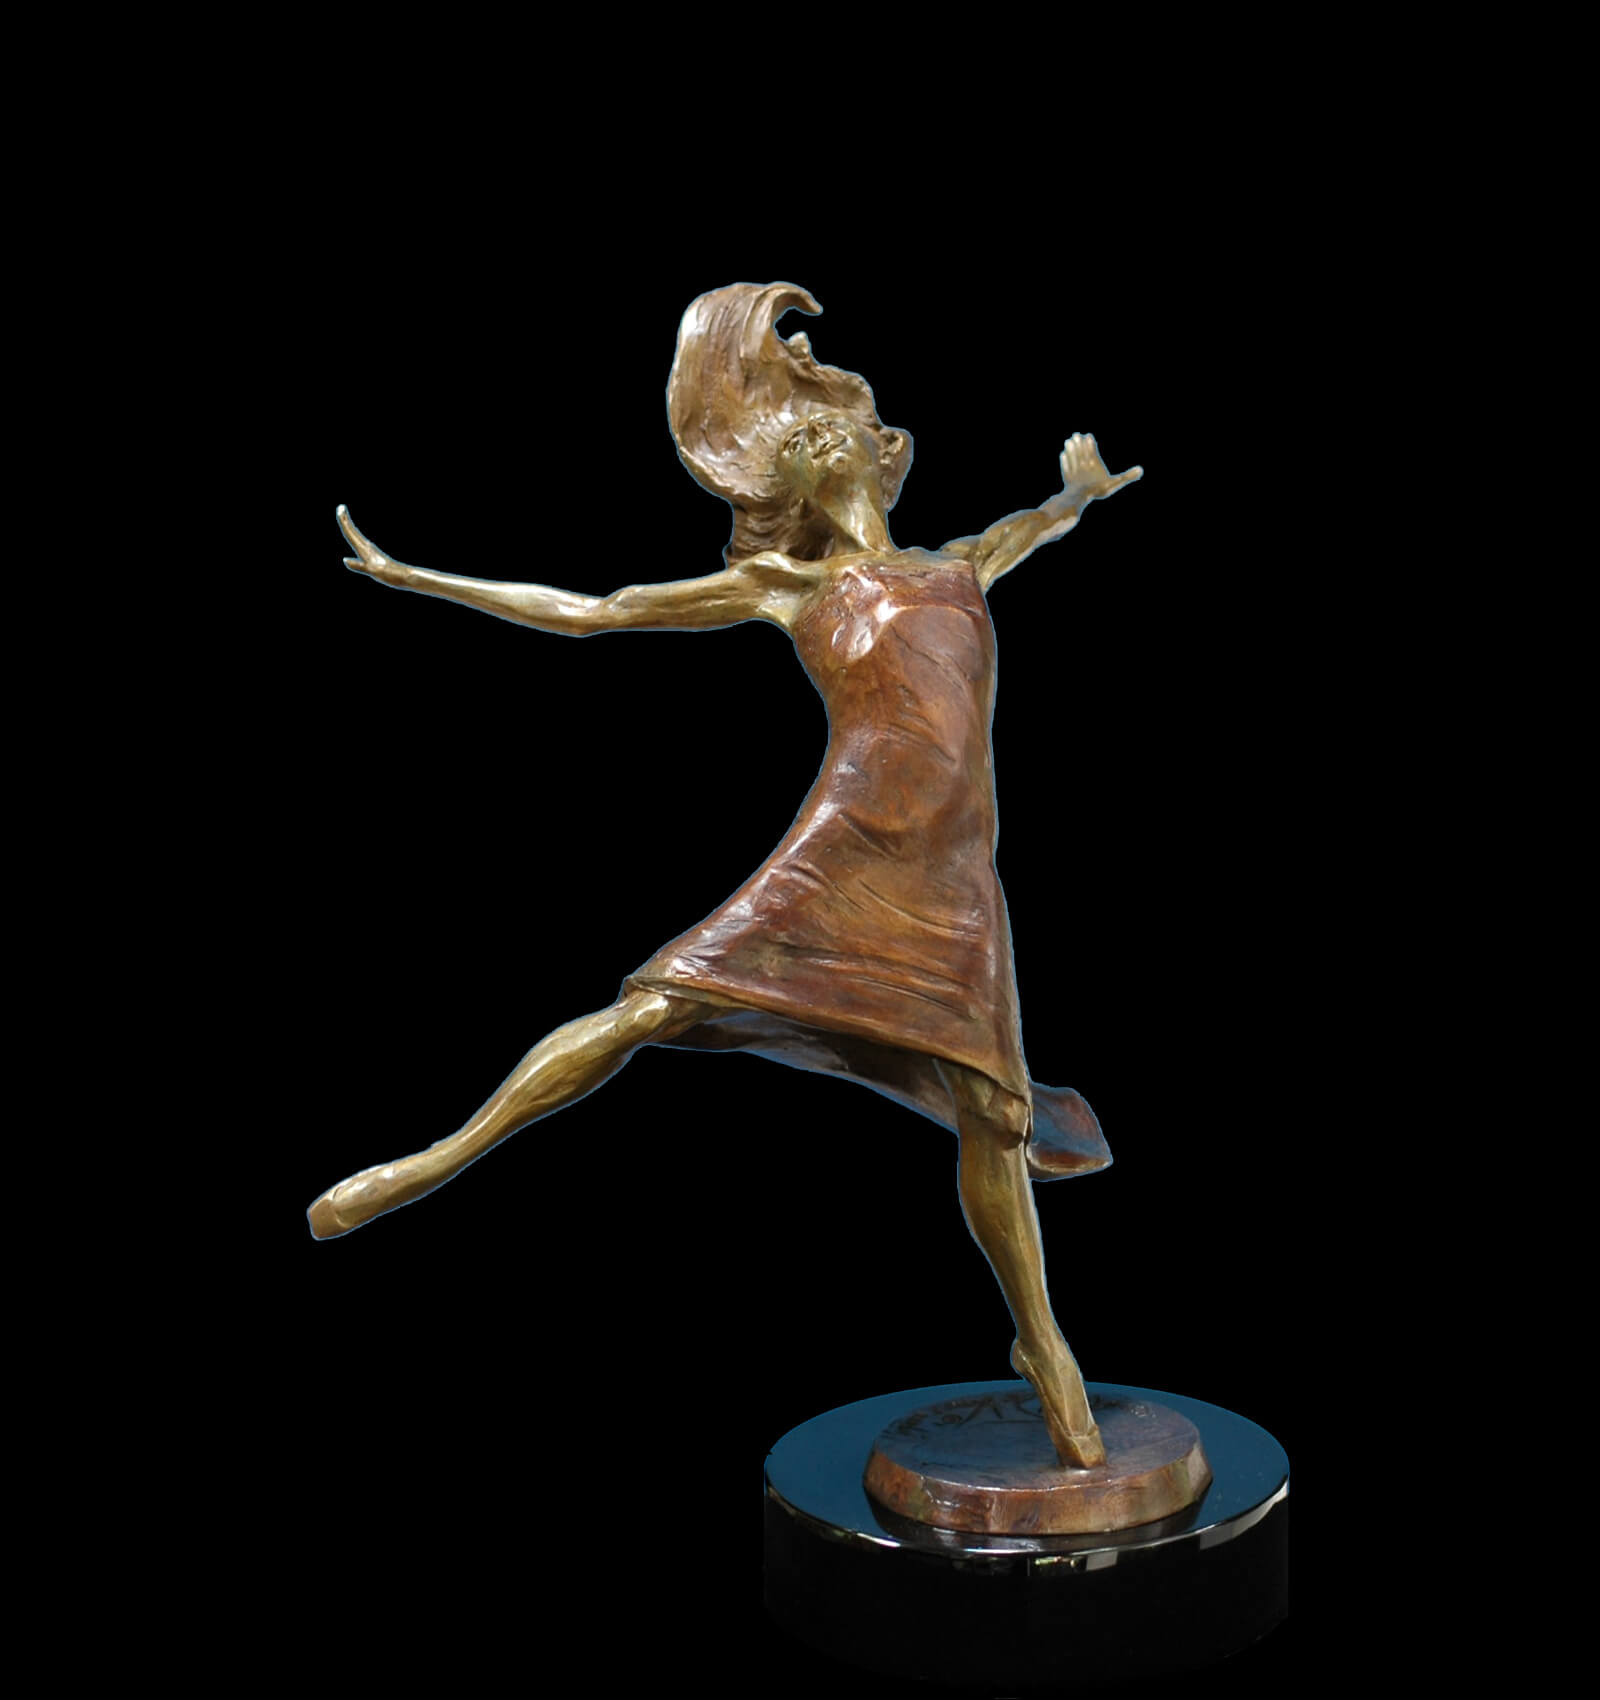 Rhapsody a medium size ballet dancer bronze figurative sculpture by Andrew DeVries